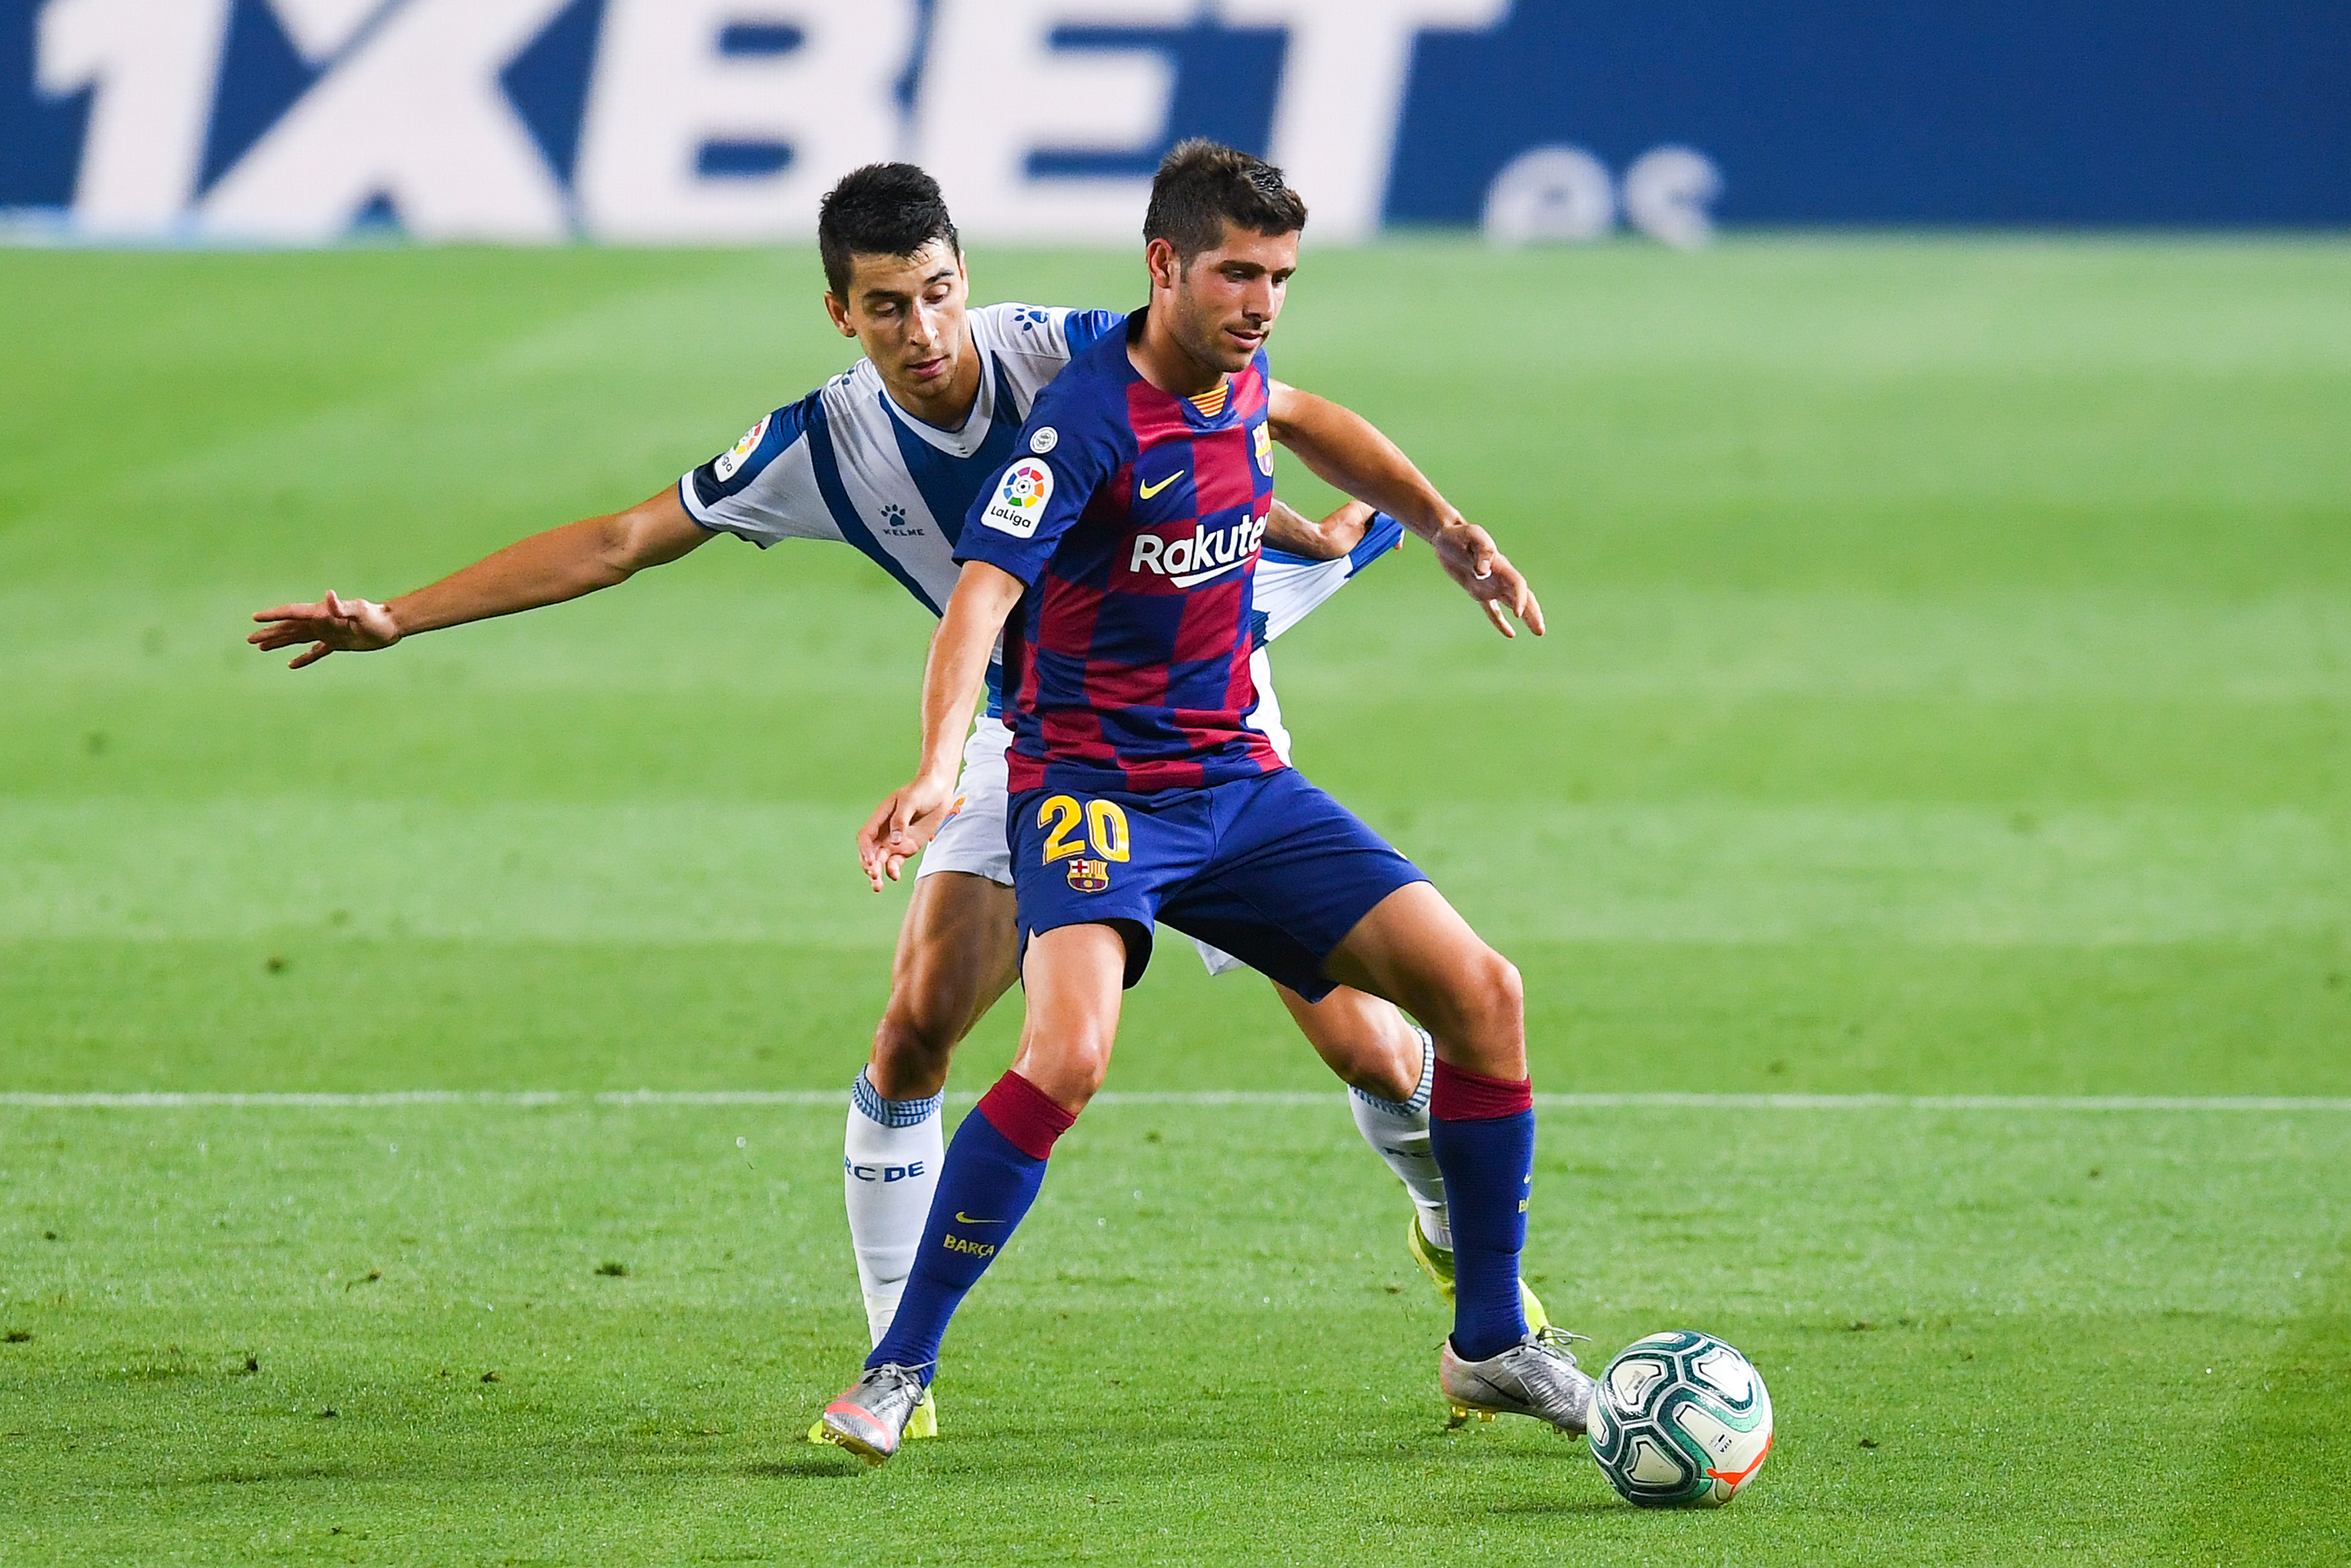 Barcelona Player Ratings Vs Espanyol - Sergi Roberto on the ball